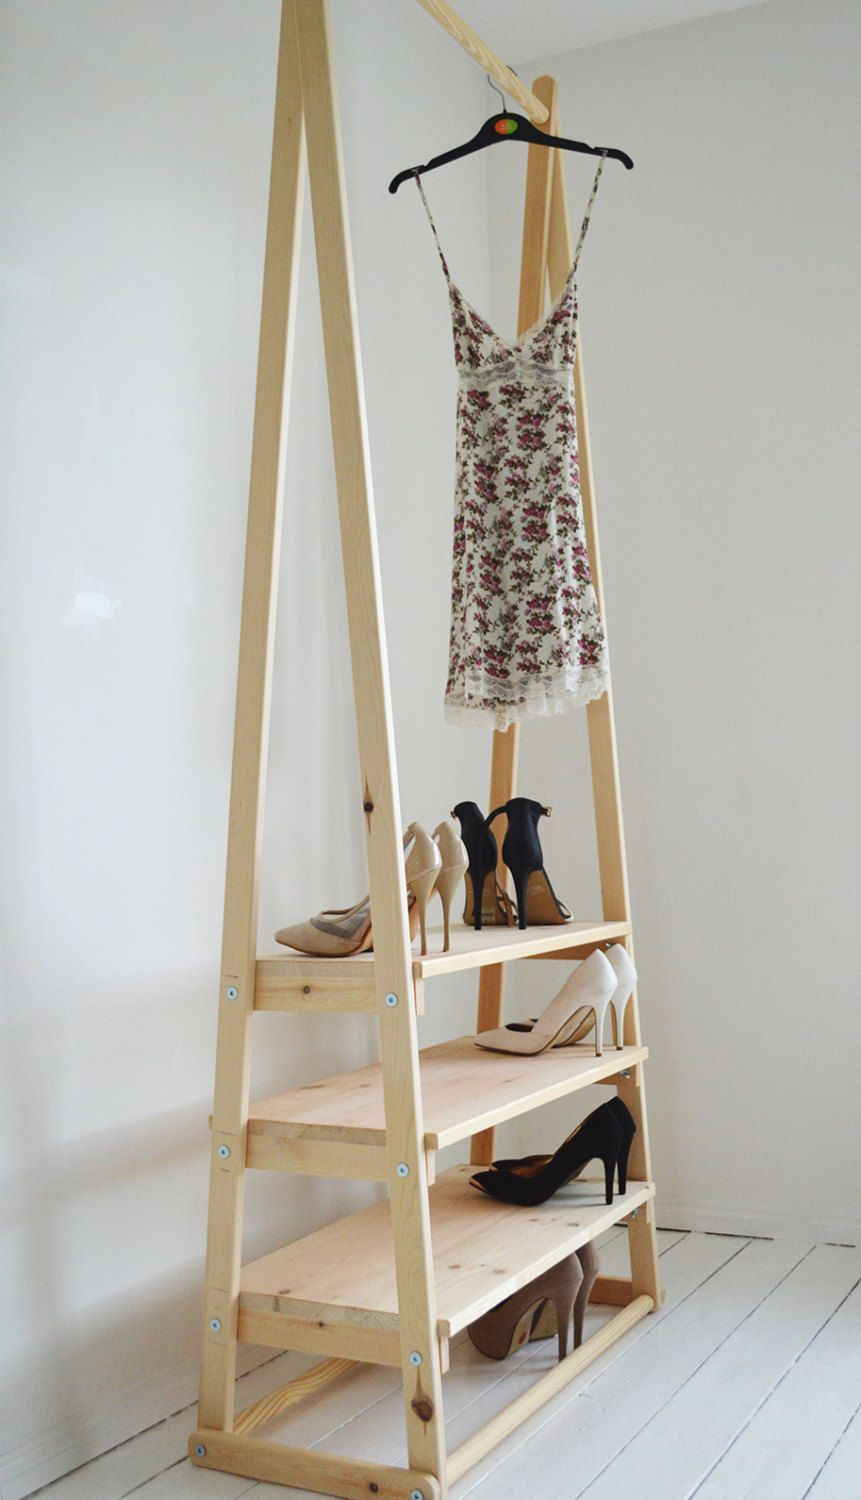 Handmade Natural Wood Clothes Rack Clothes Rail With 3 Etsy Wood Clothes Wooden Clothes Rack Wood Clothing Rack